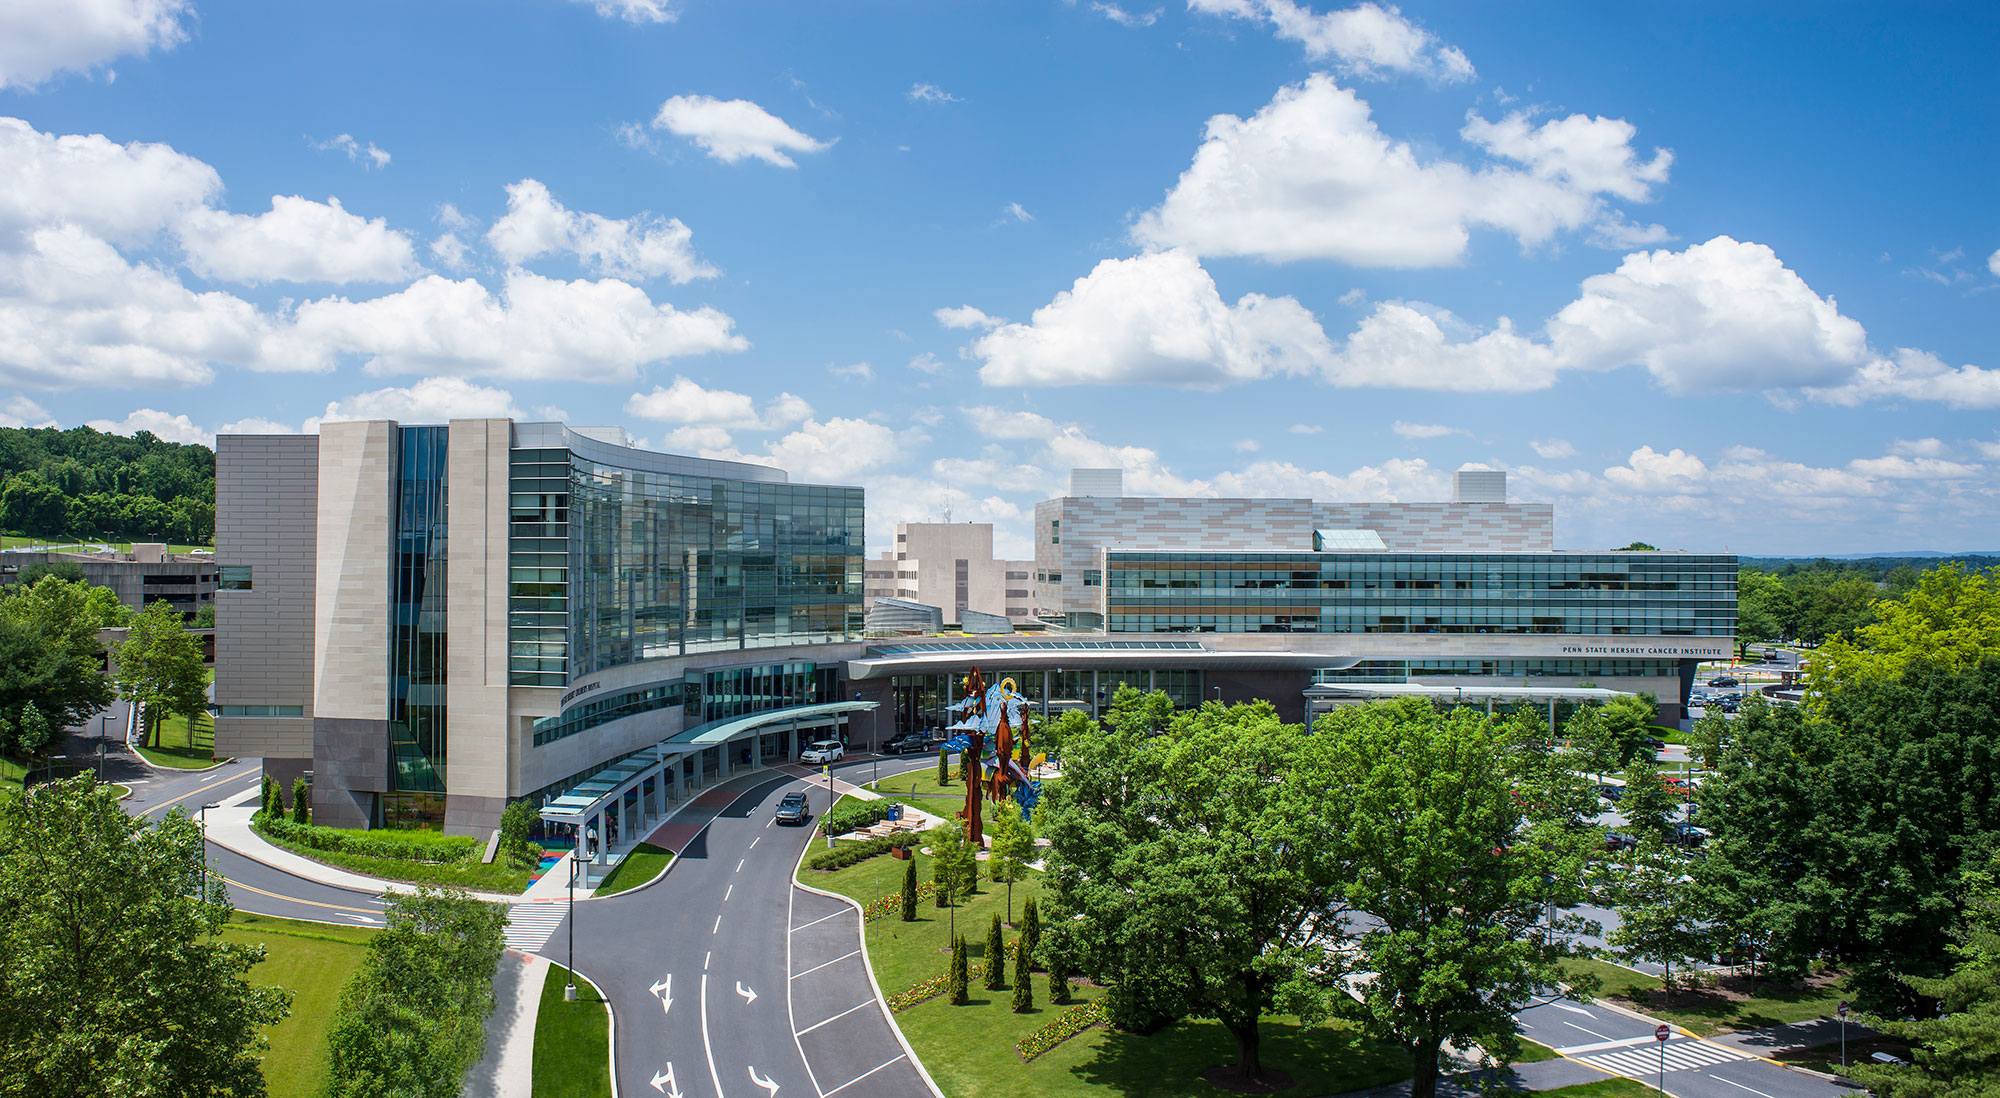 An aerial view of Penn State Health and College of Medicine's campus in Hershey, Pa.